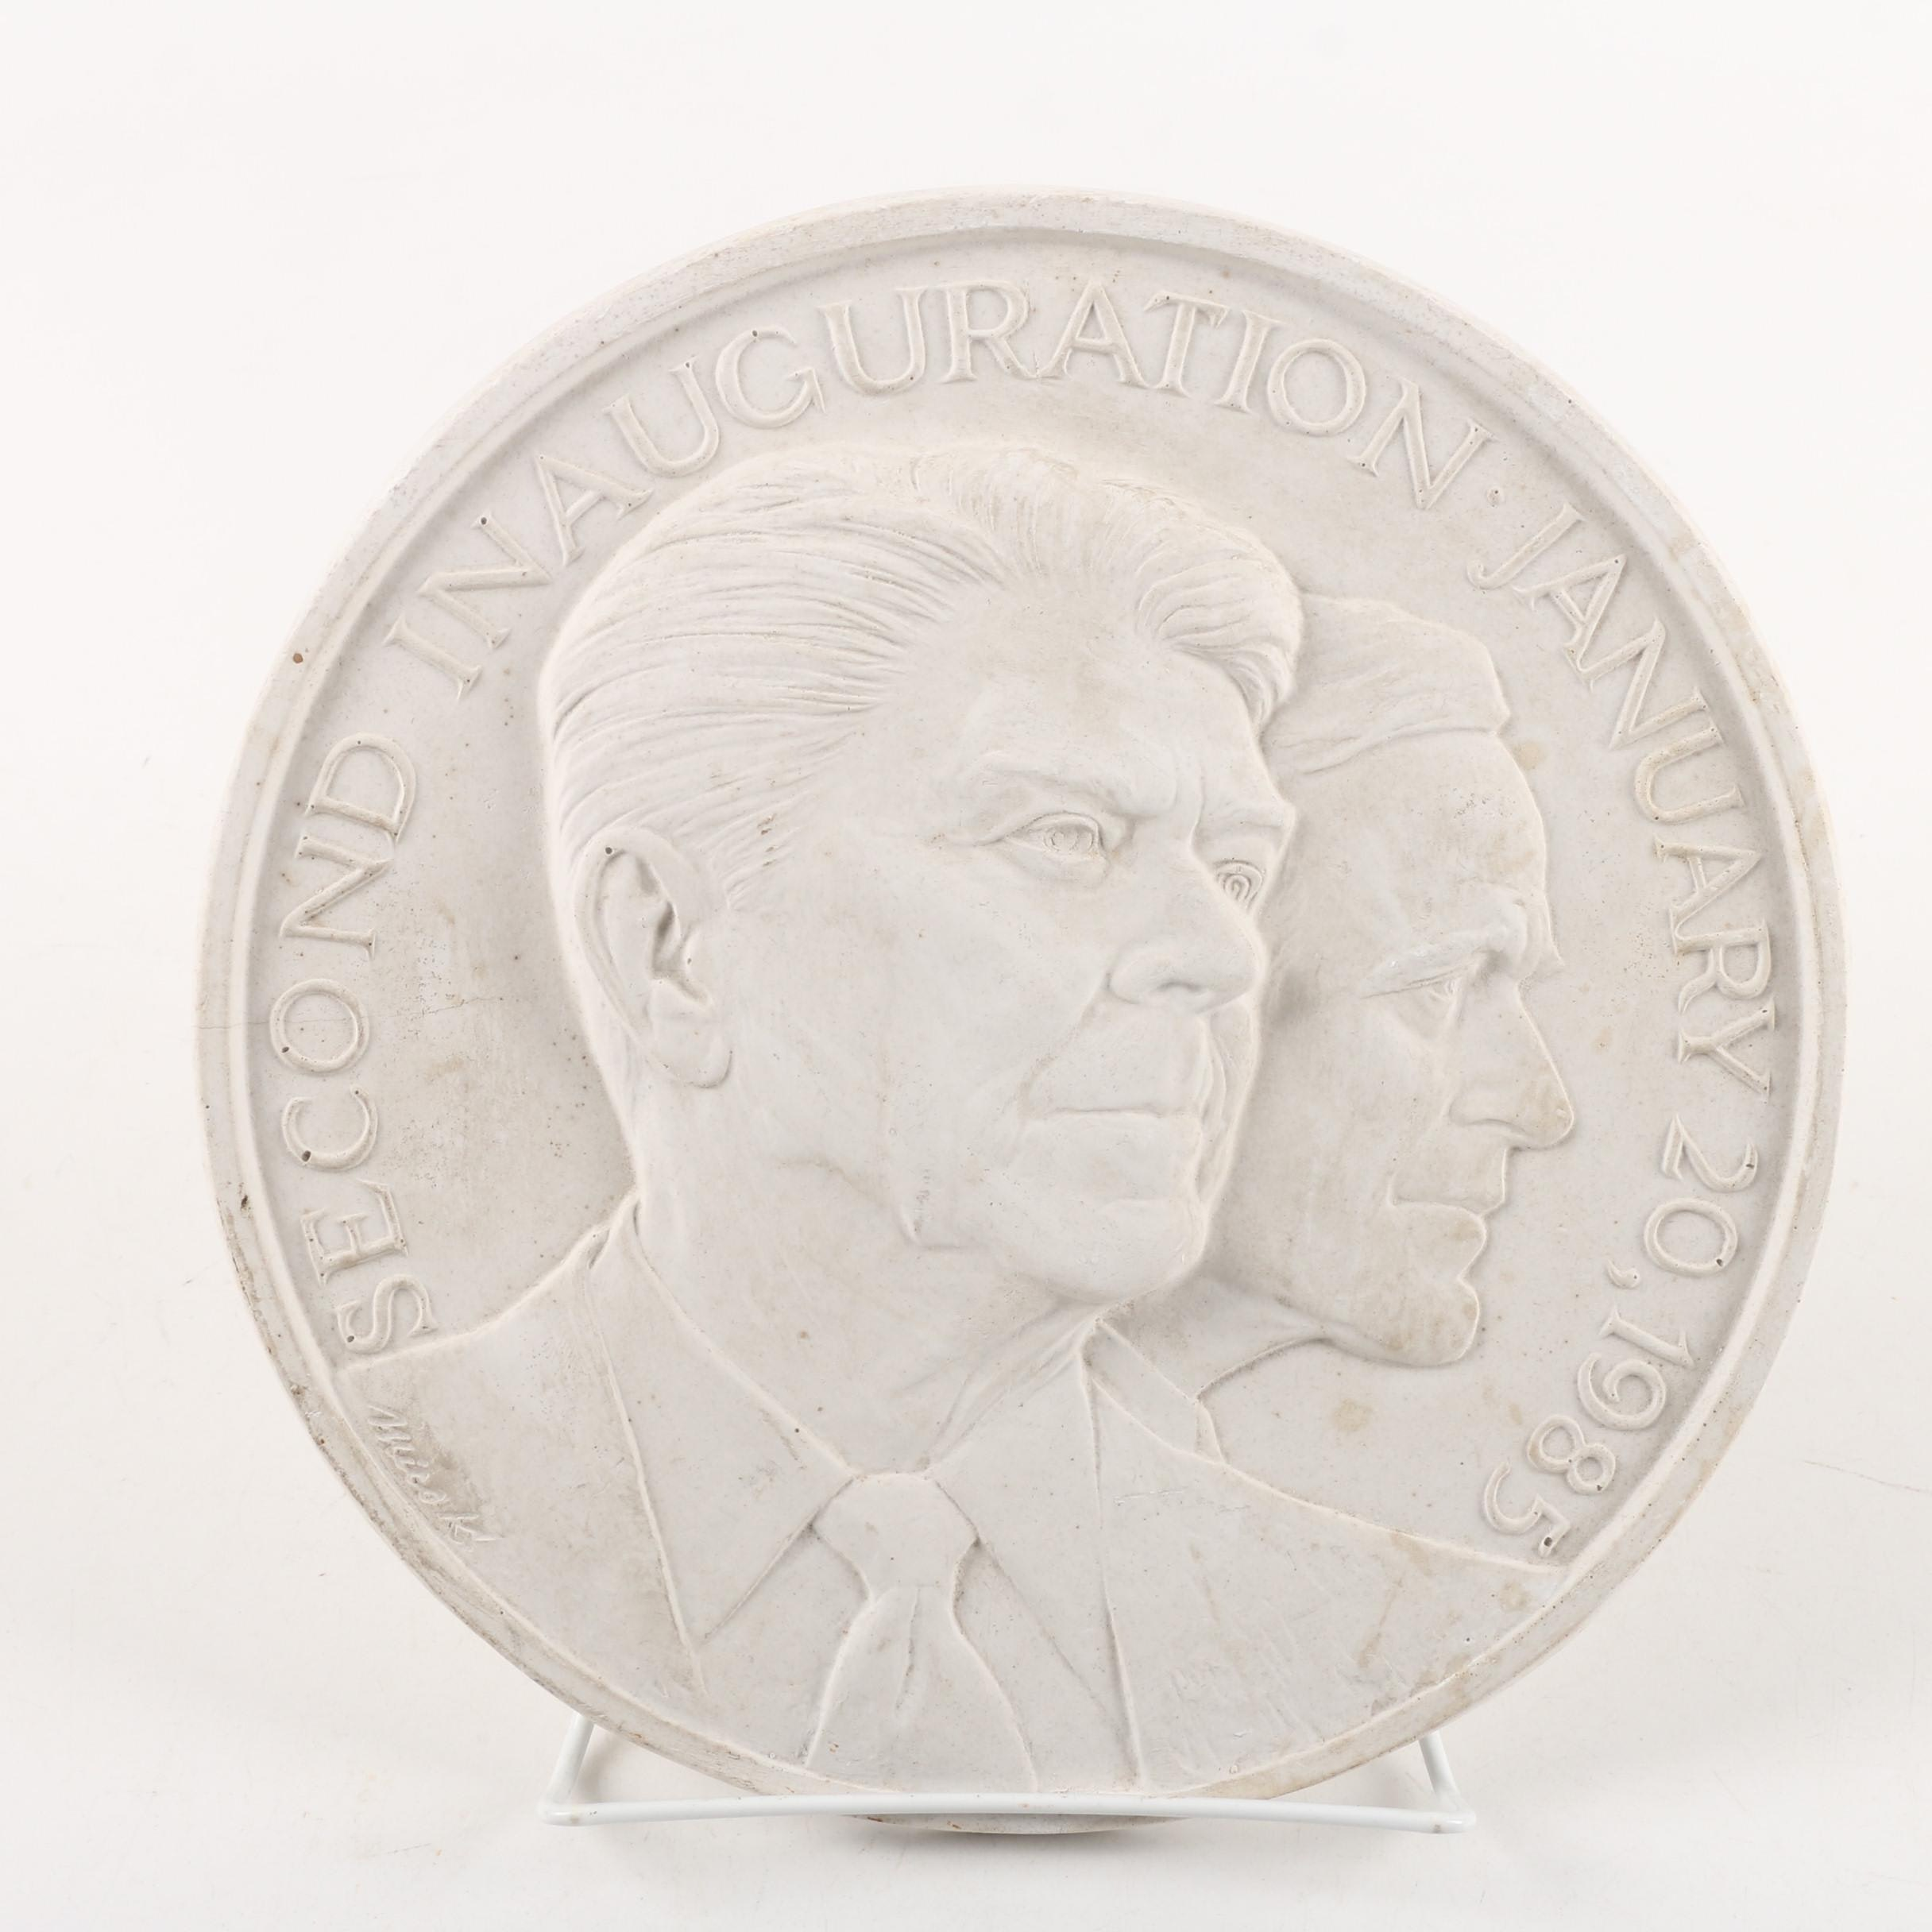 Plaster Reproduction of 1985 Reagan Inaugural Medal After Mico Kaufman